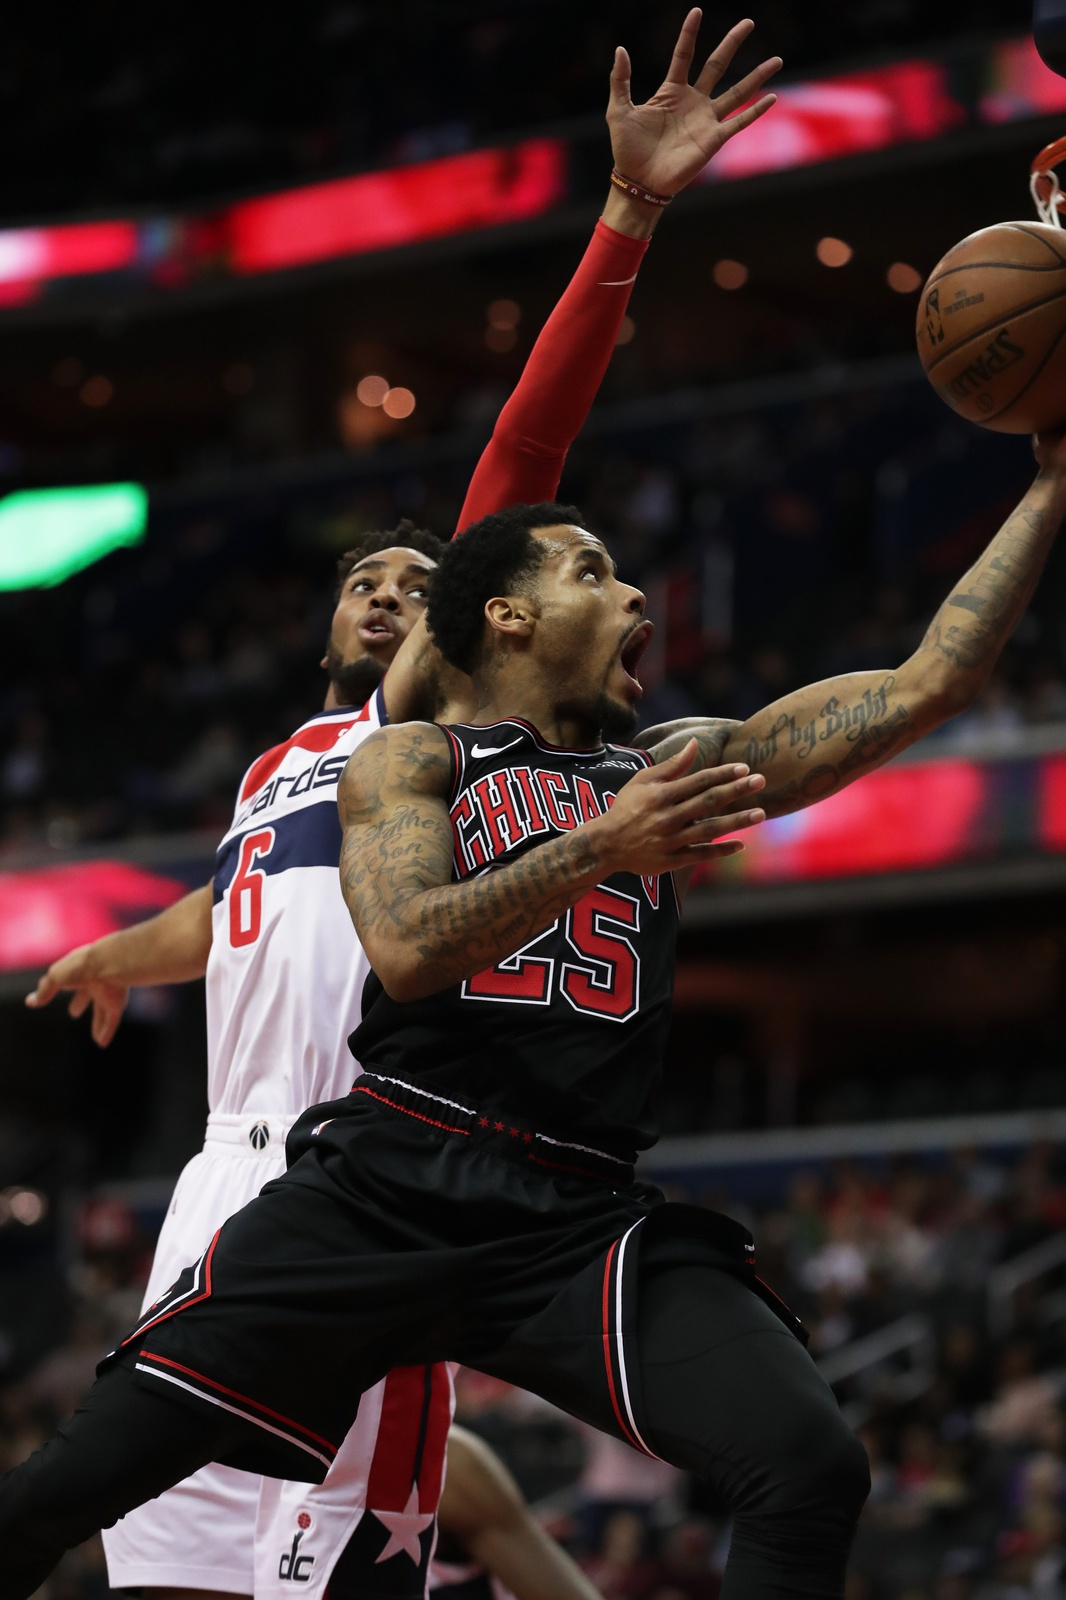 Walt Lemon Jr. #25 of the Chicago Bulls shoots the ball against the Washington Wizards on April 3, 2019 at Capital One Arena in Washington, DC.